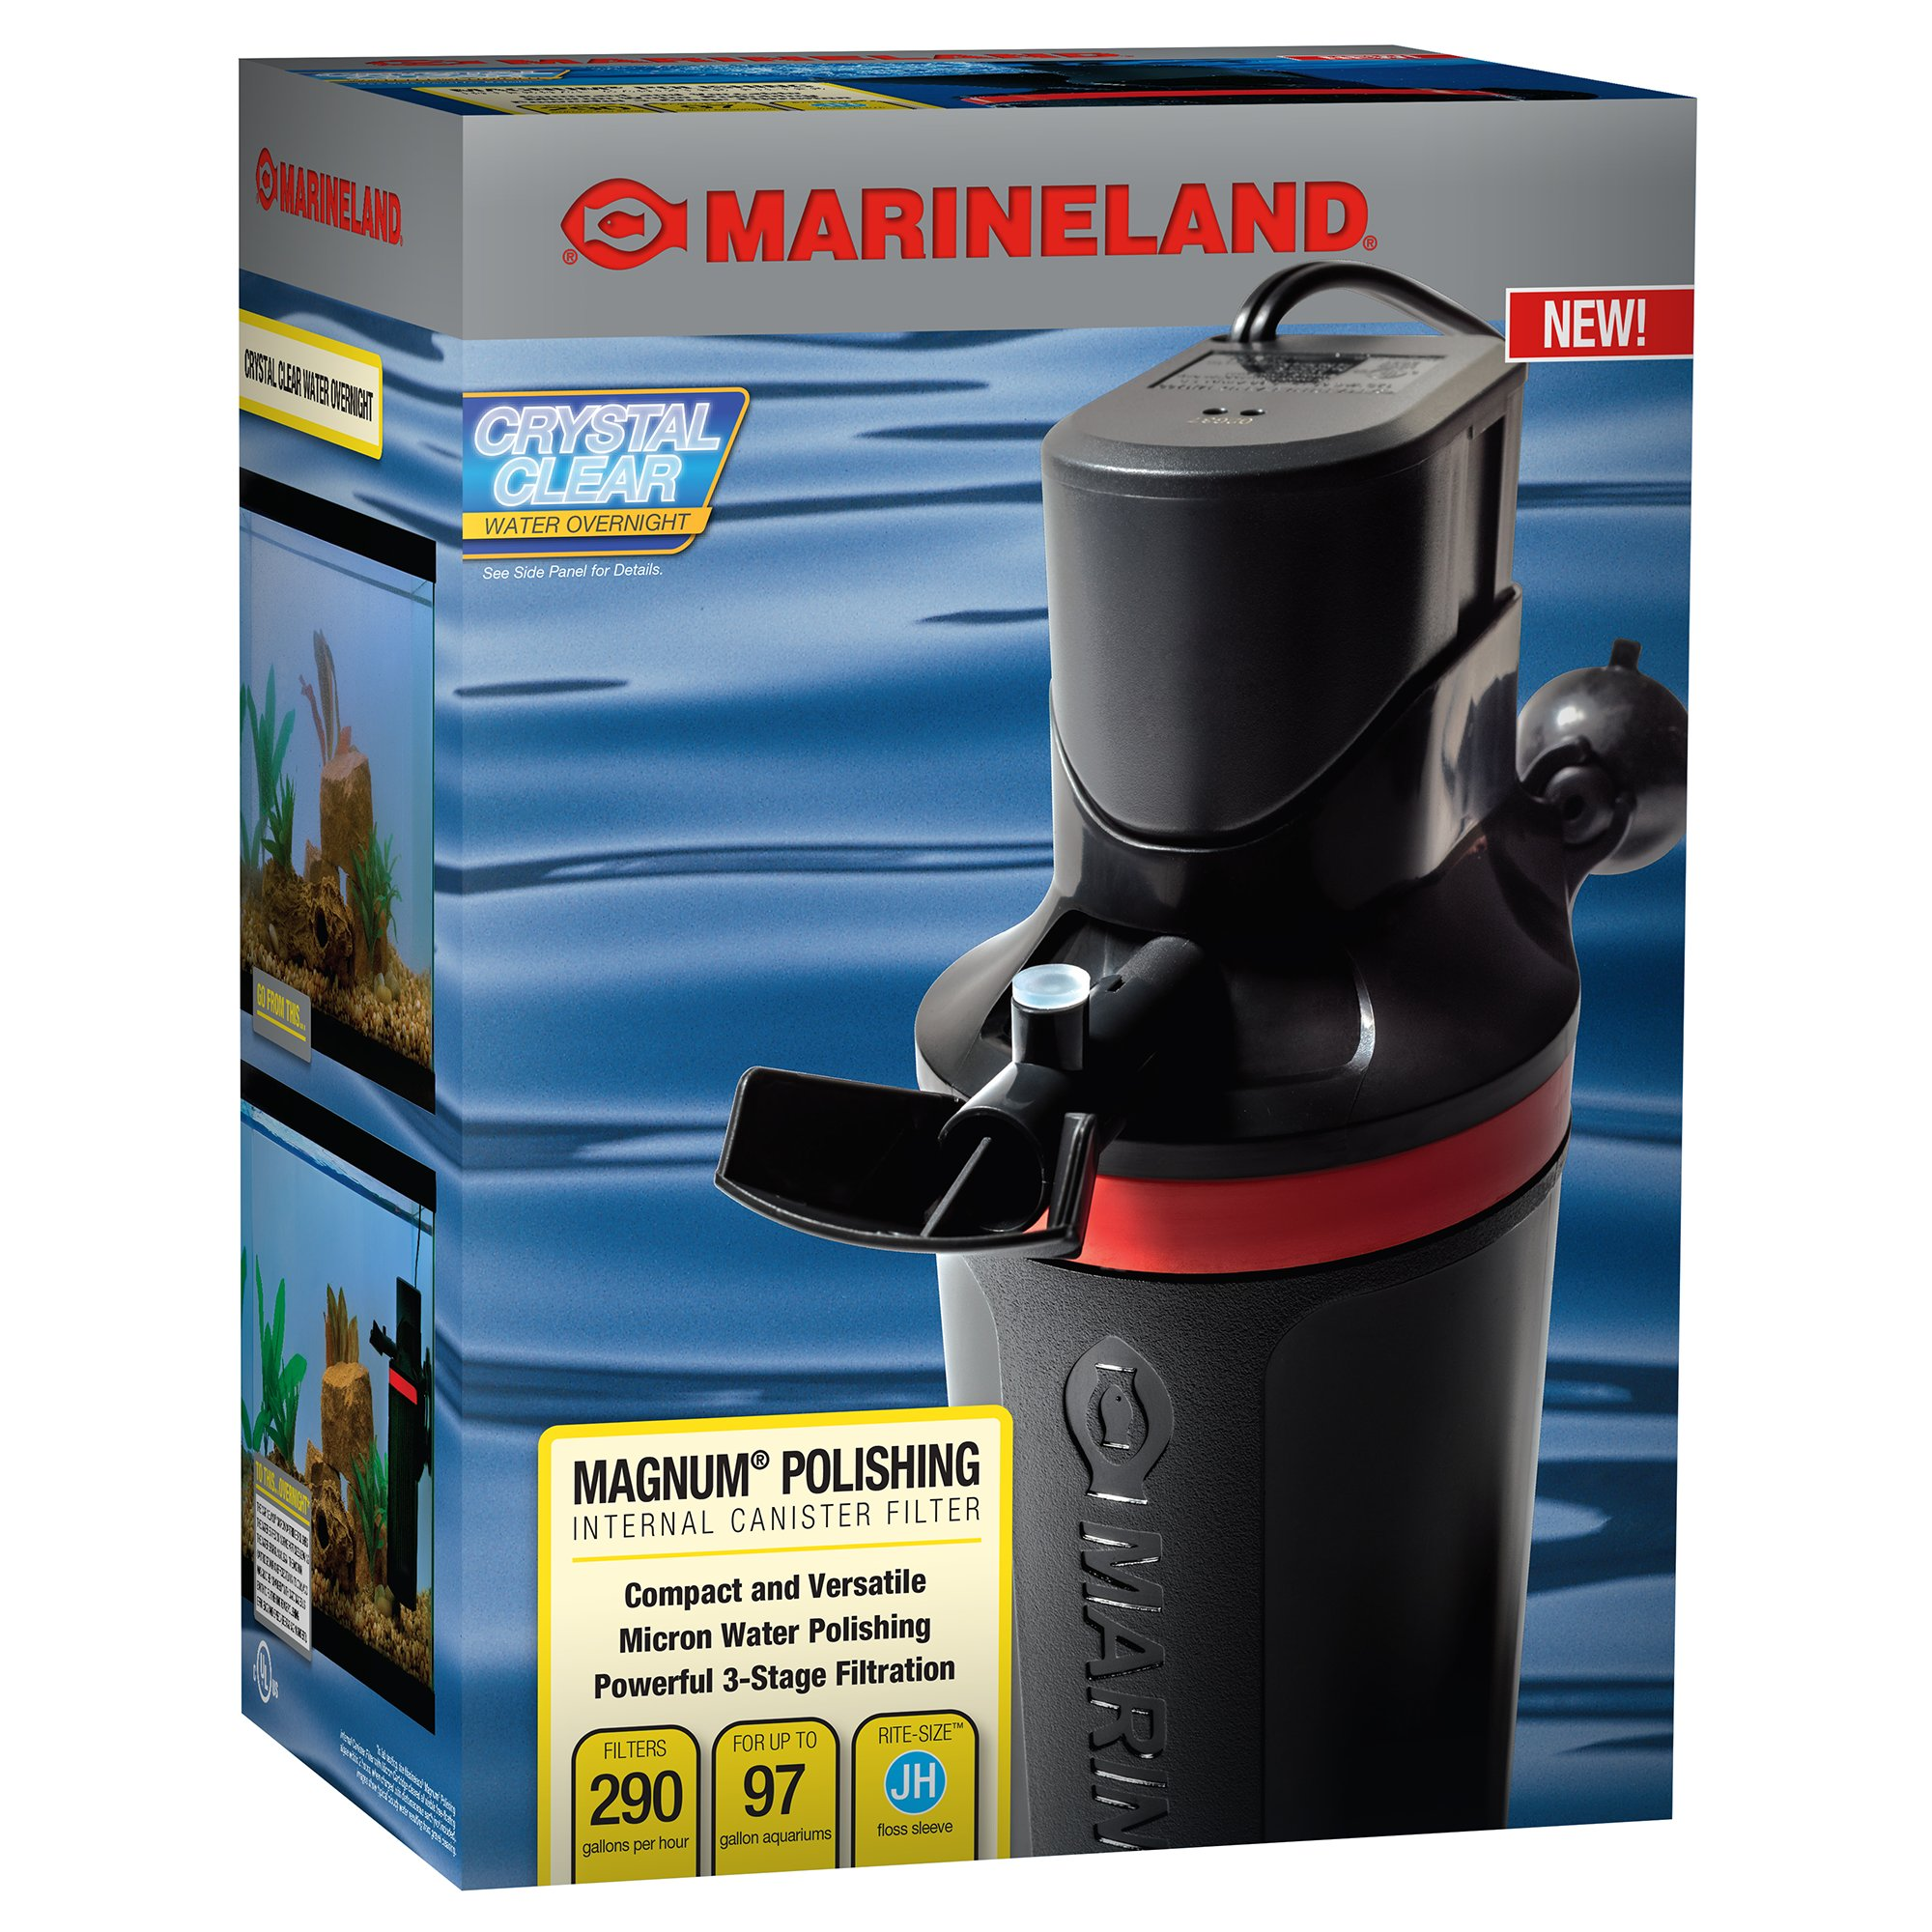 Marineland Magnum Polishing Internal Canister Filter Petco